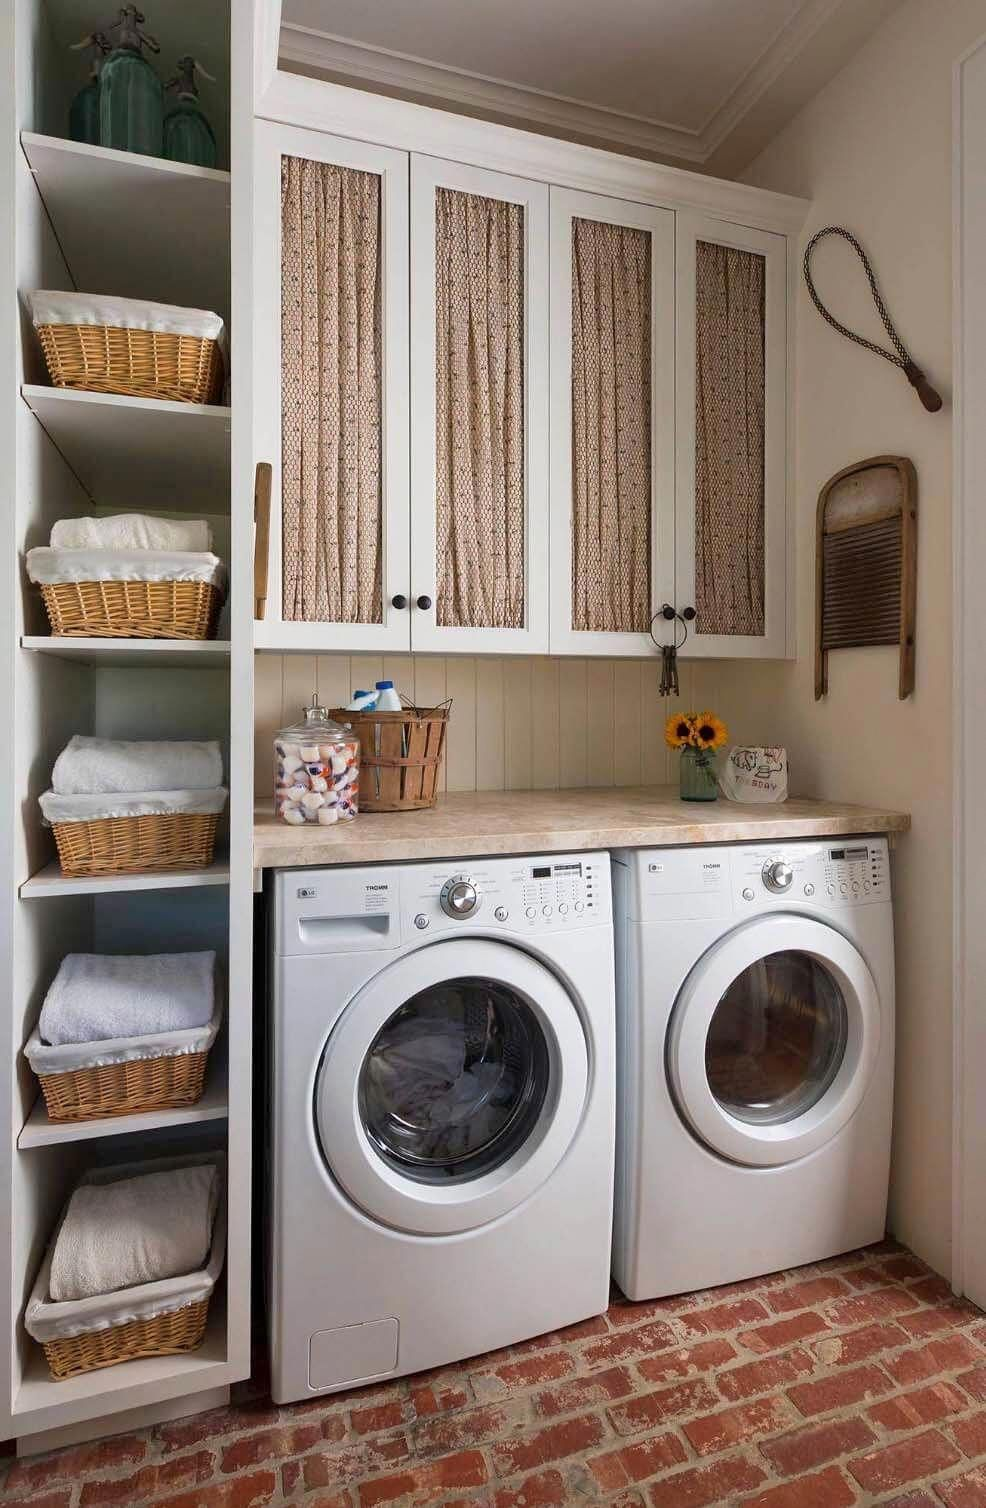 Old Fashioned Meets Modern Laundry Room Design